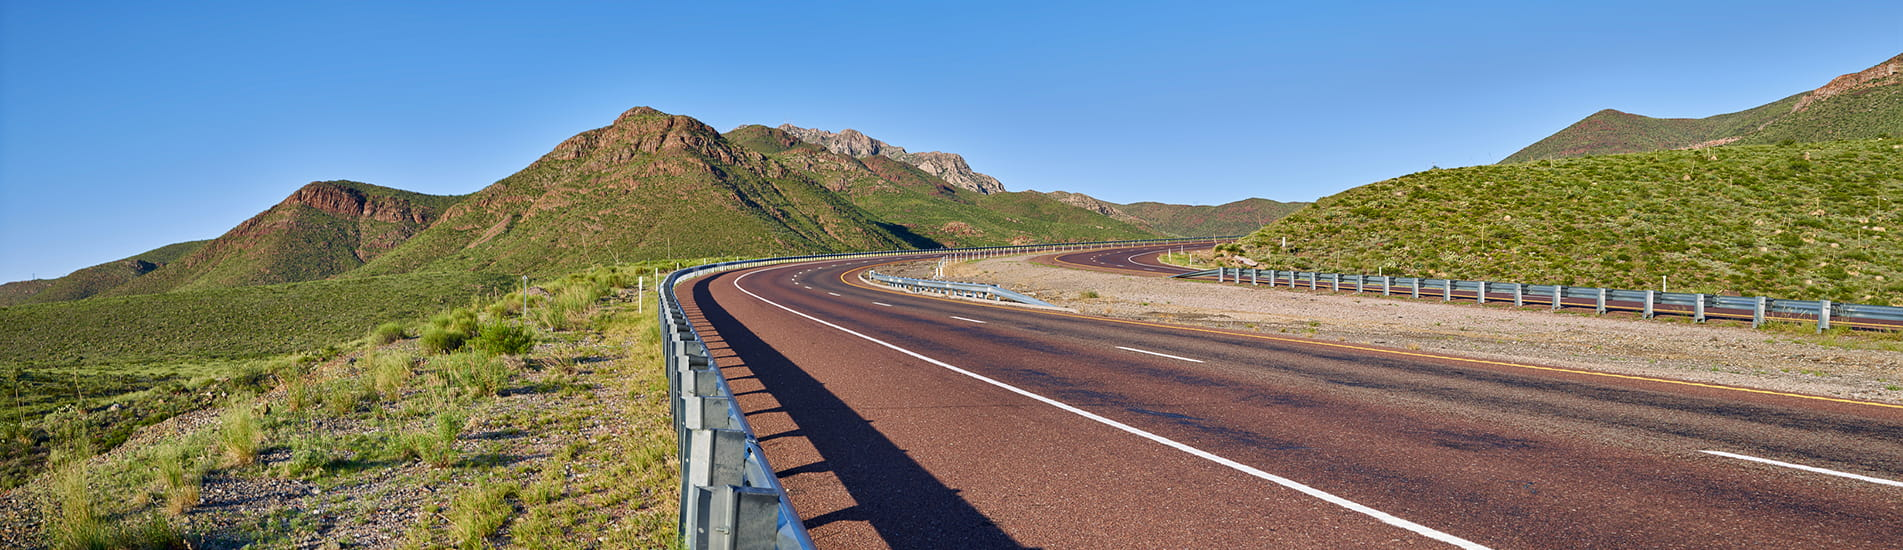 A highway road curving to the right set against a mountain range and clear blue sky.